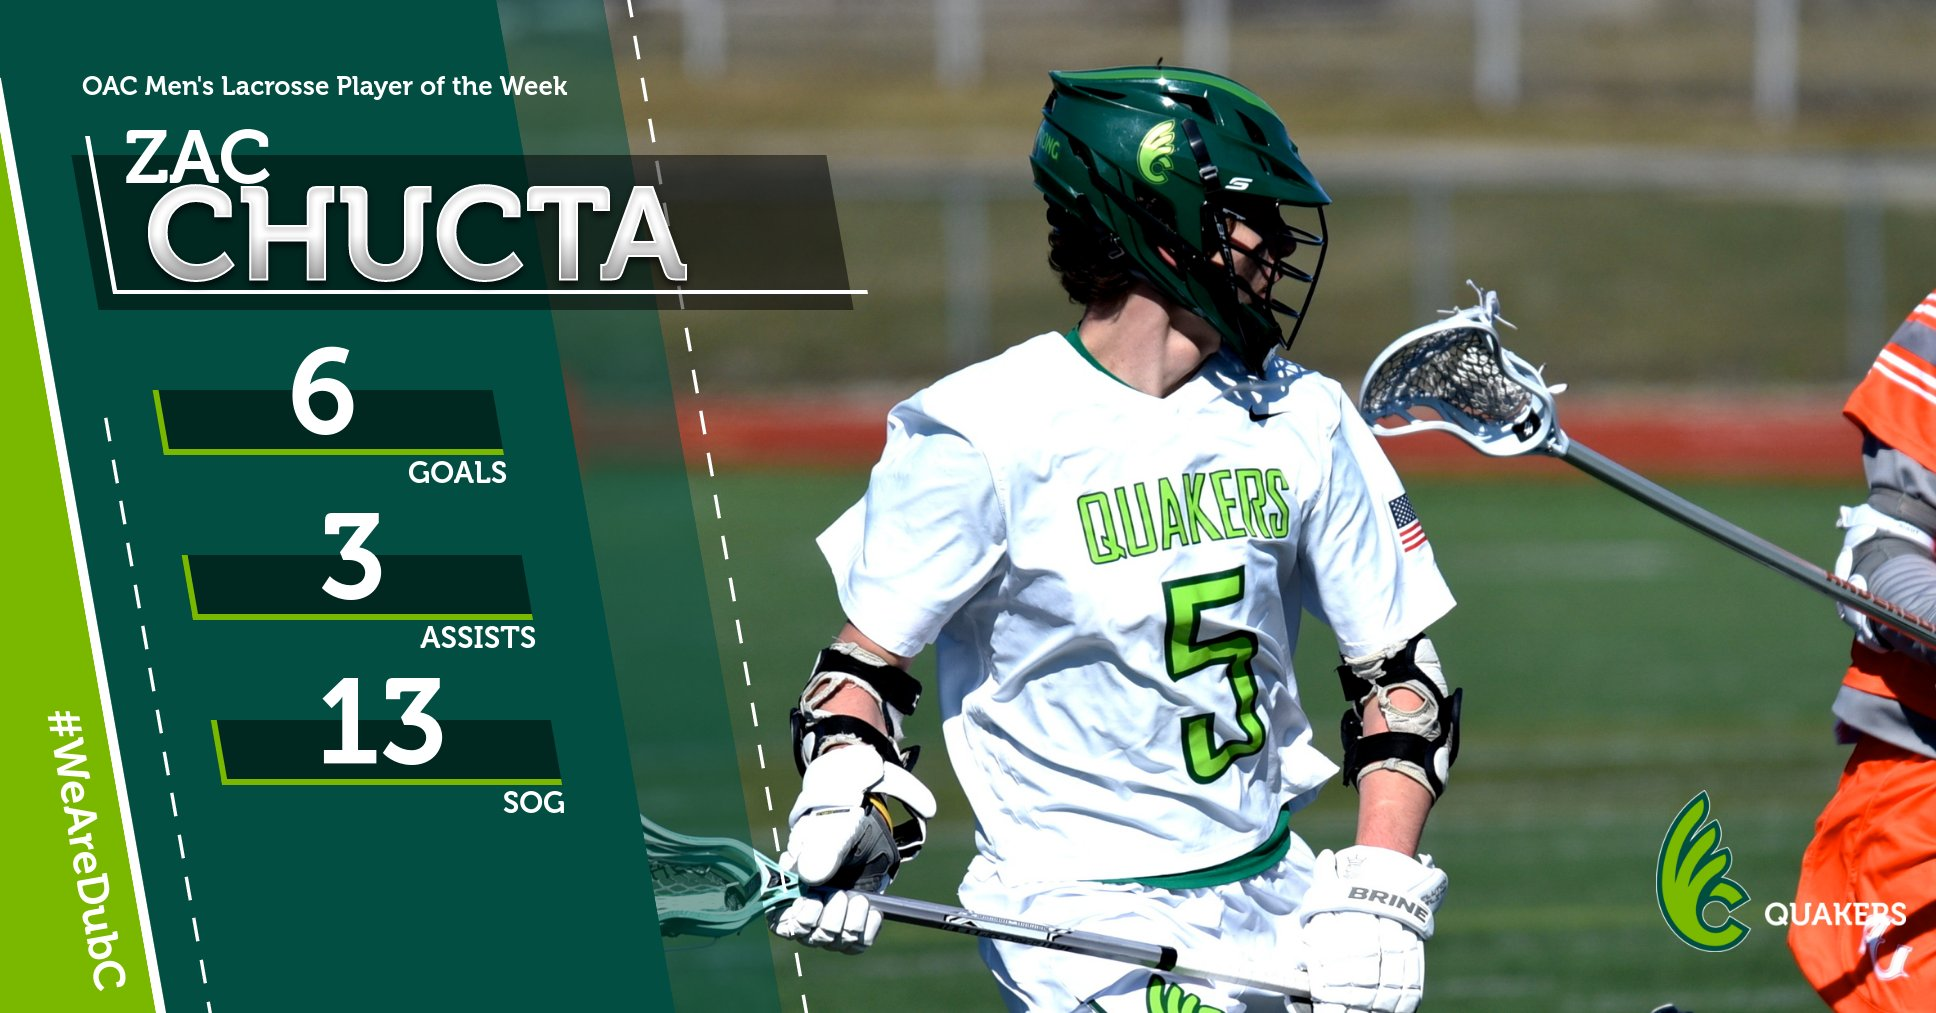 Zac Chucta Named OAC Men's Lacrosse Player of the Week